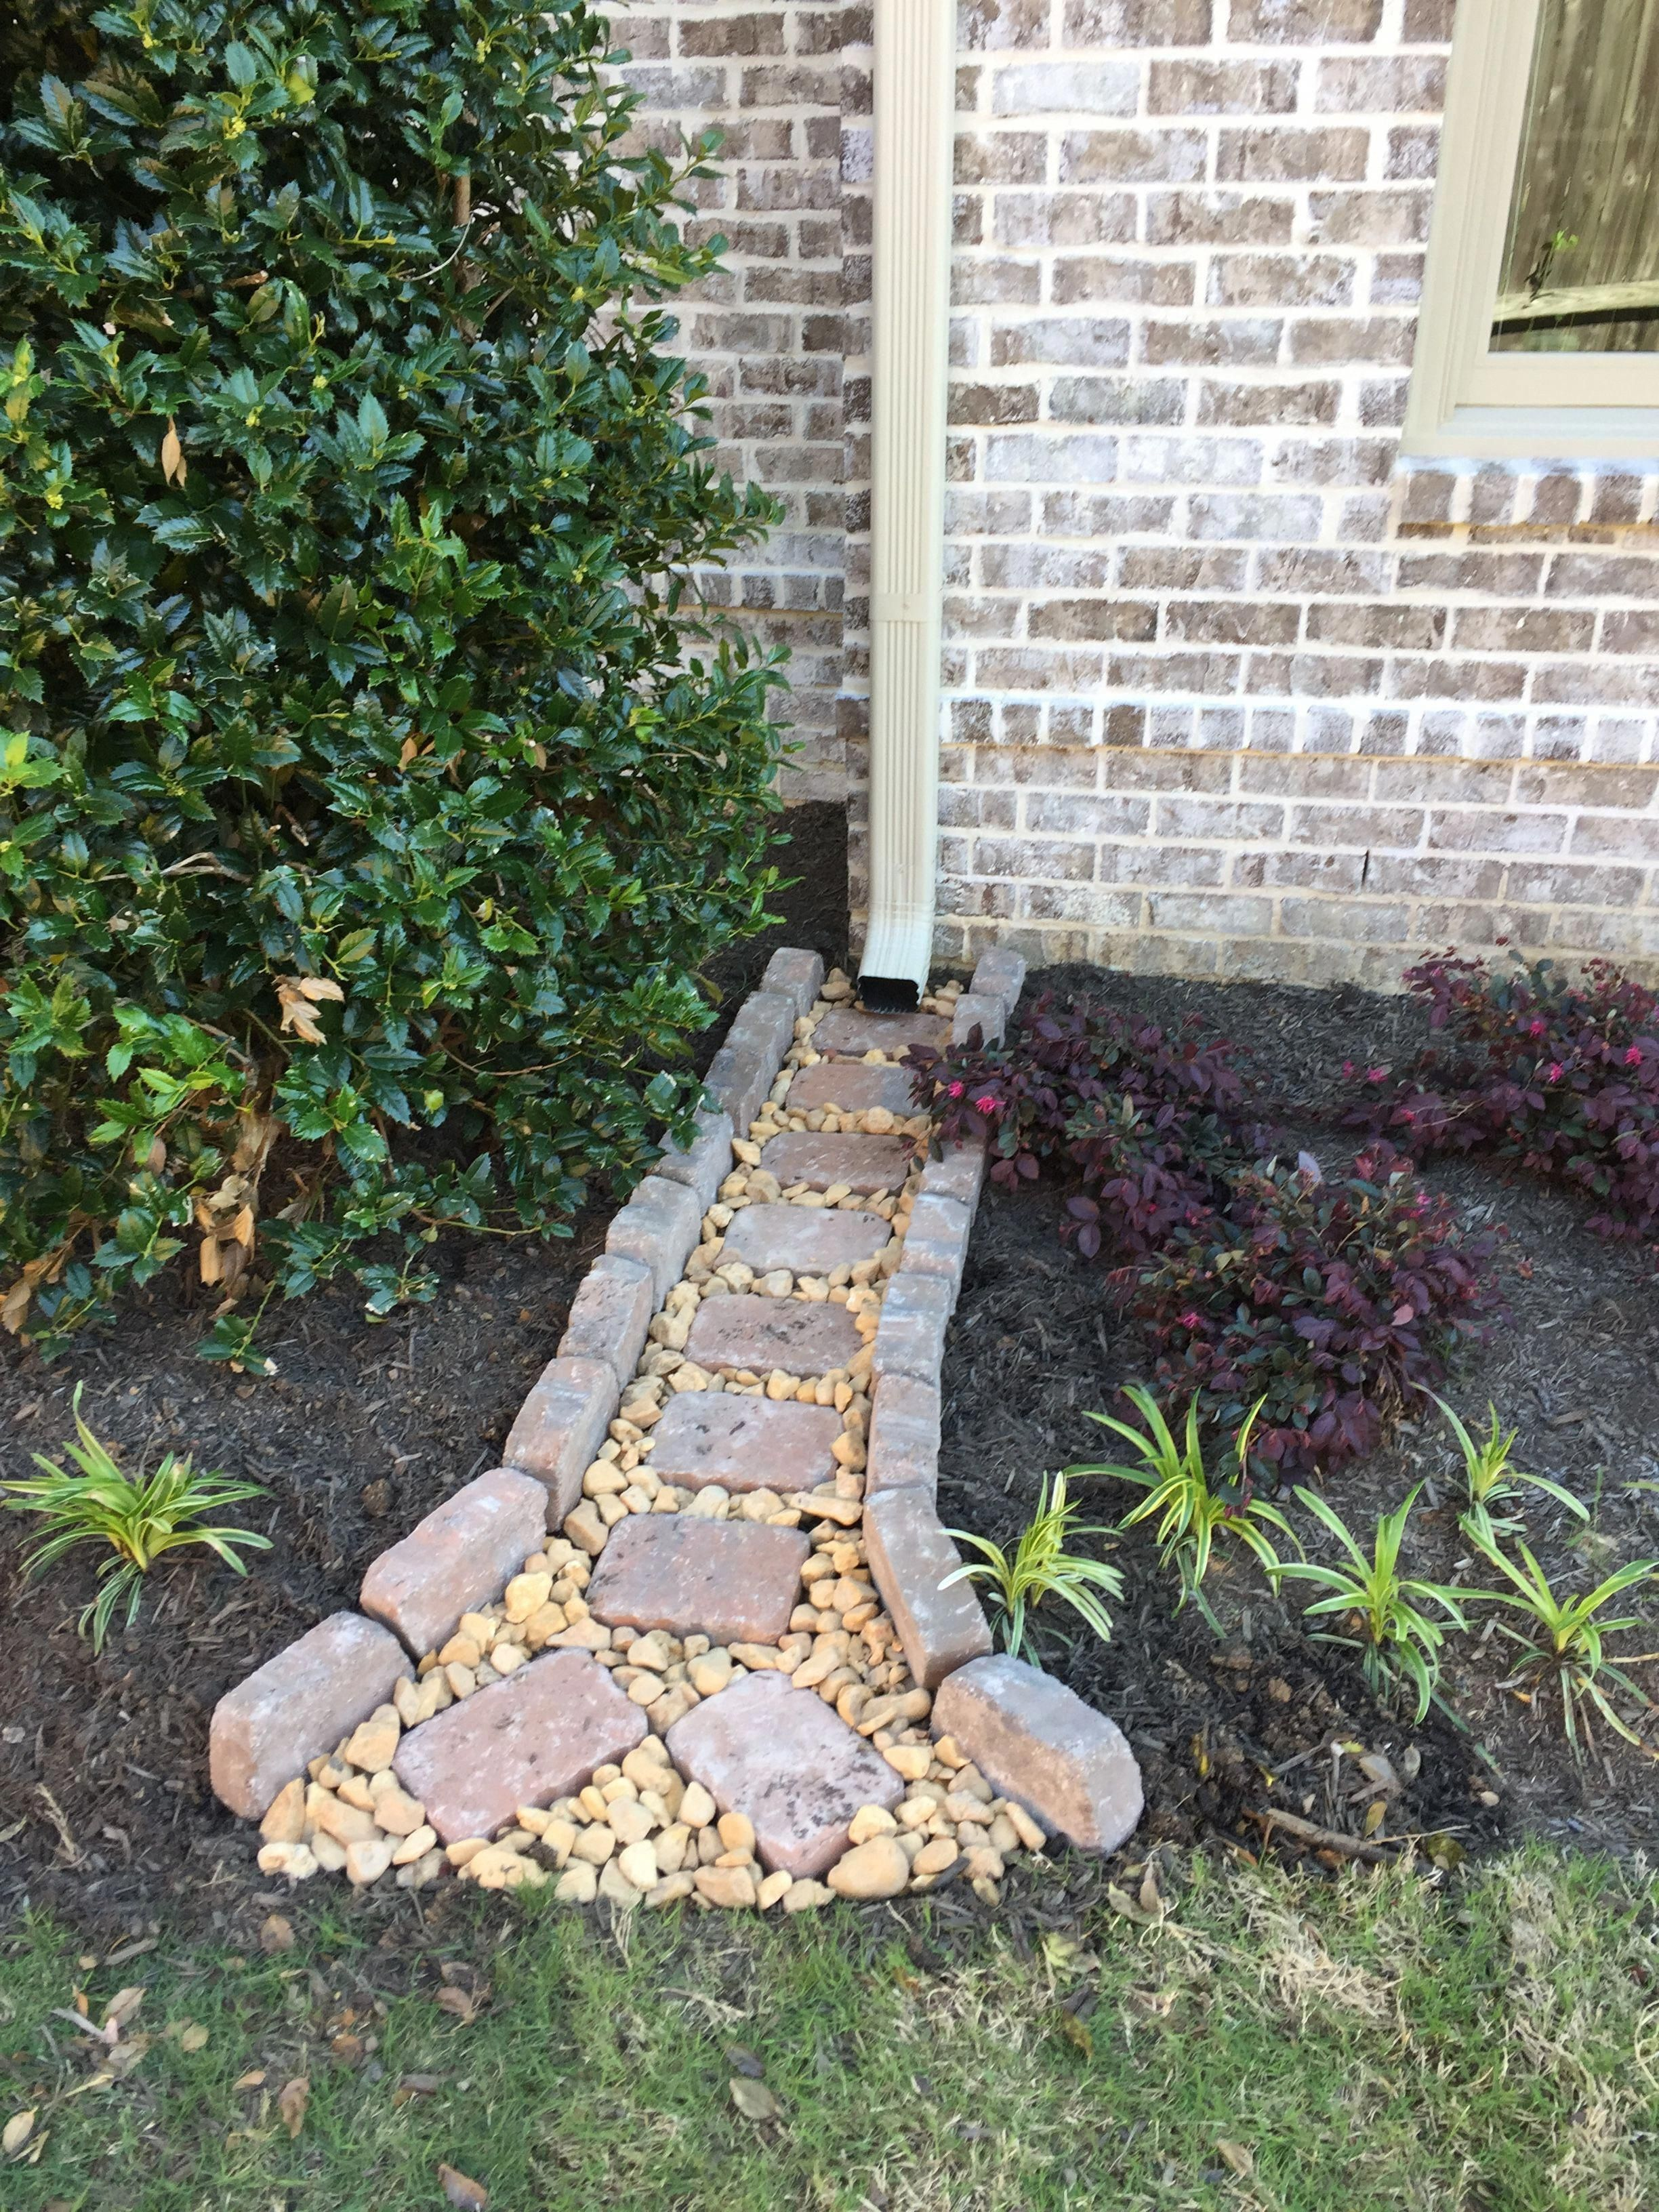 From Seamless Gutter Installation To Leaf Protection The House Depot Has You Covered On Ways To Prot Backyard Landscaping Yard Landscaping Outdoor Landscaping